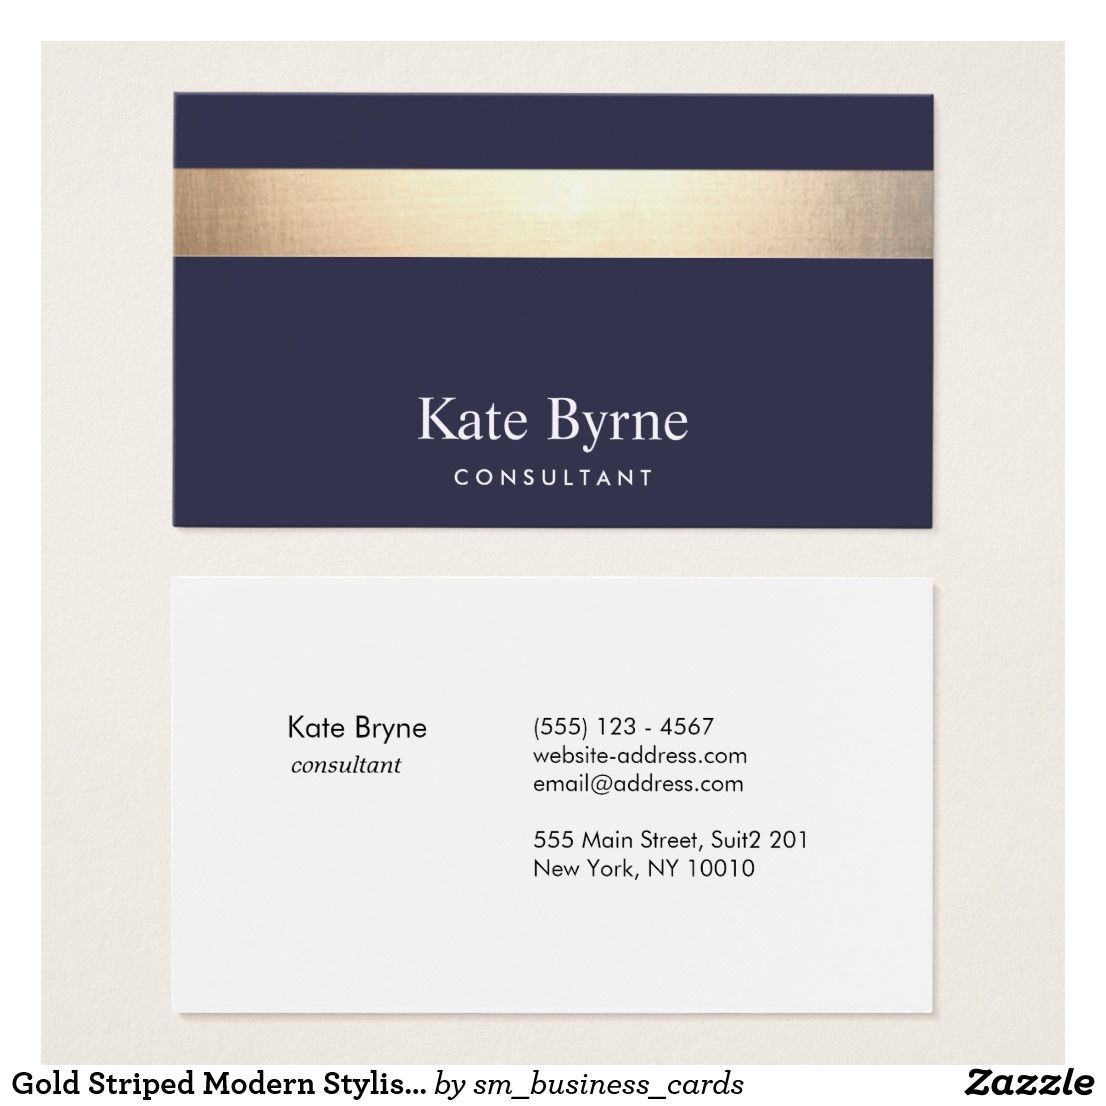 Gold striped modern stylish navy blue business card business cards gold striped modern stylish navy blue business card colourmoves